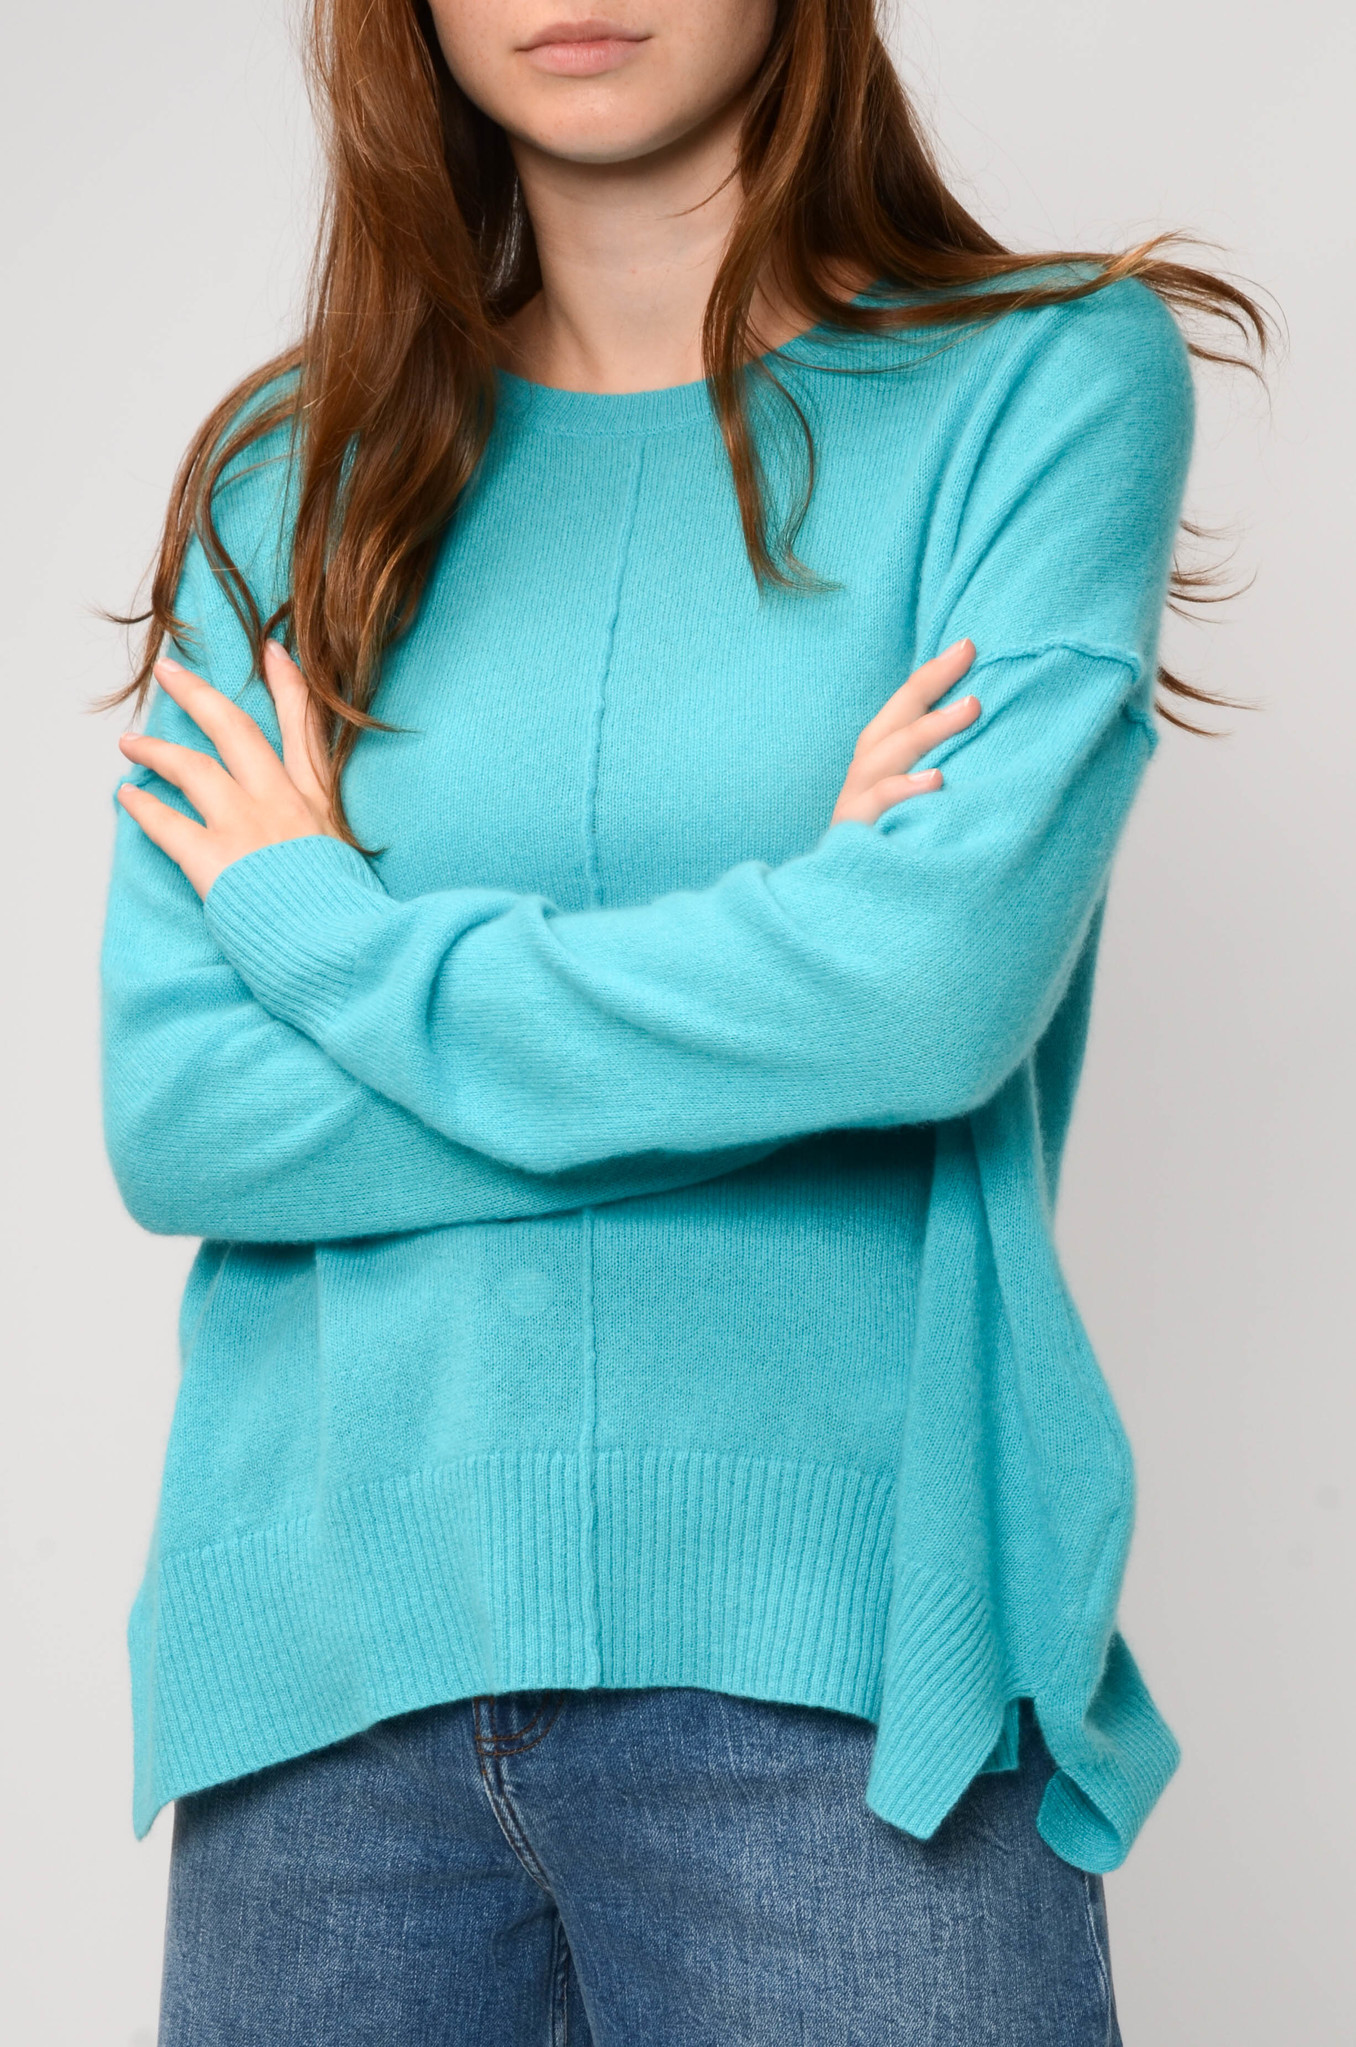 KENZA SWEATER IN TURQUOISE-6